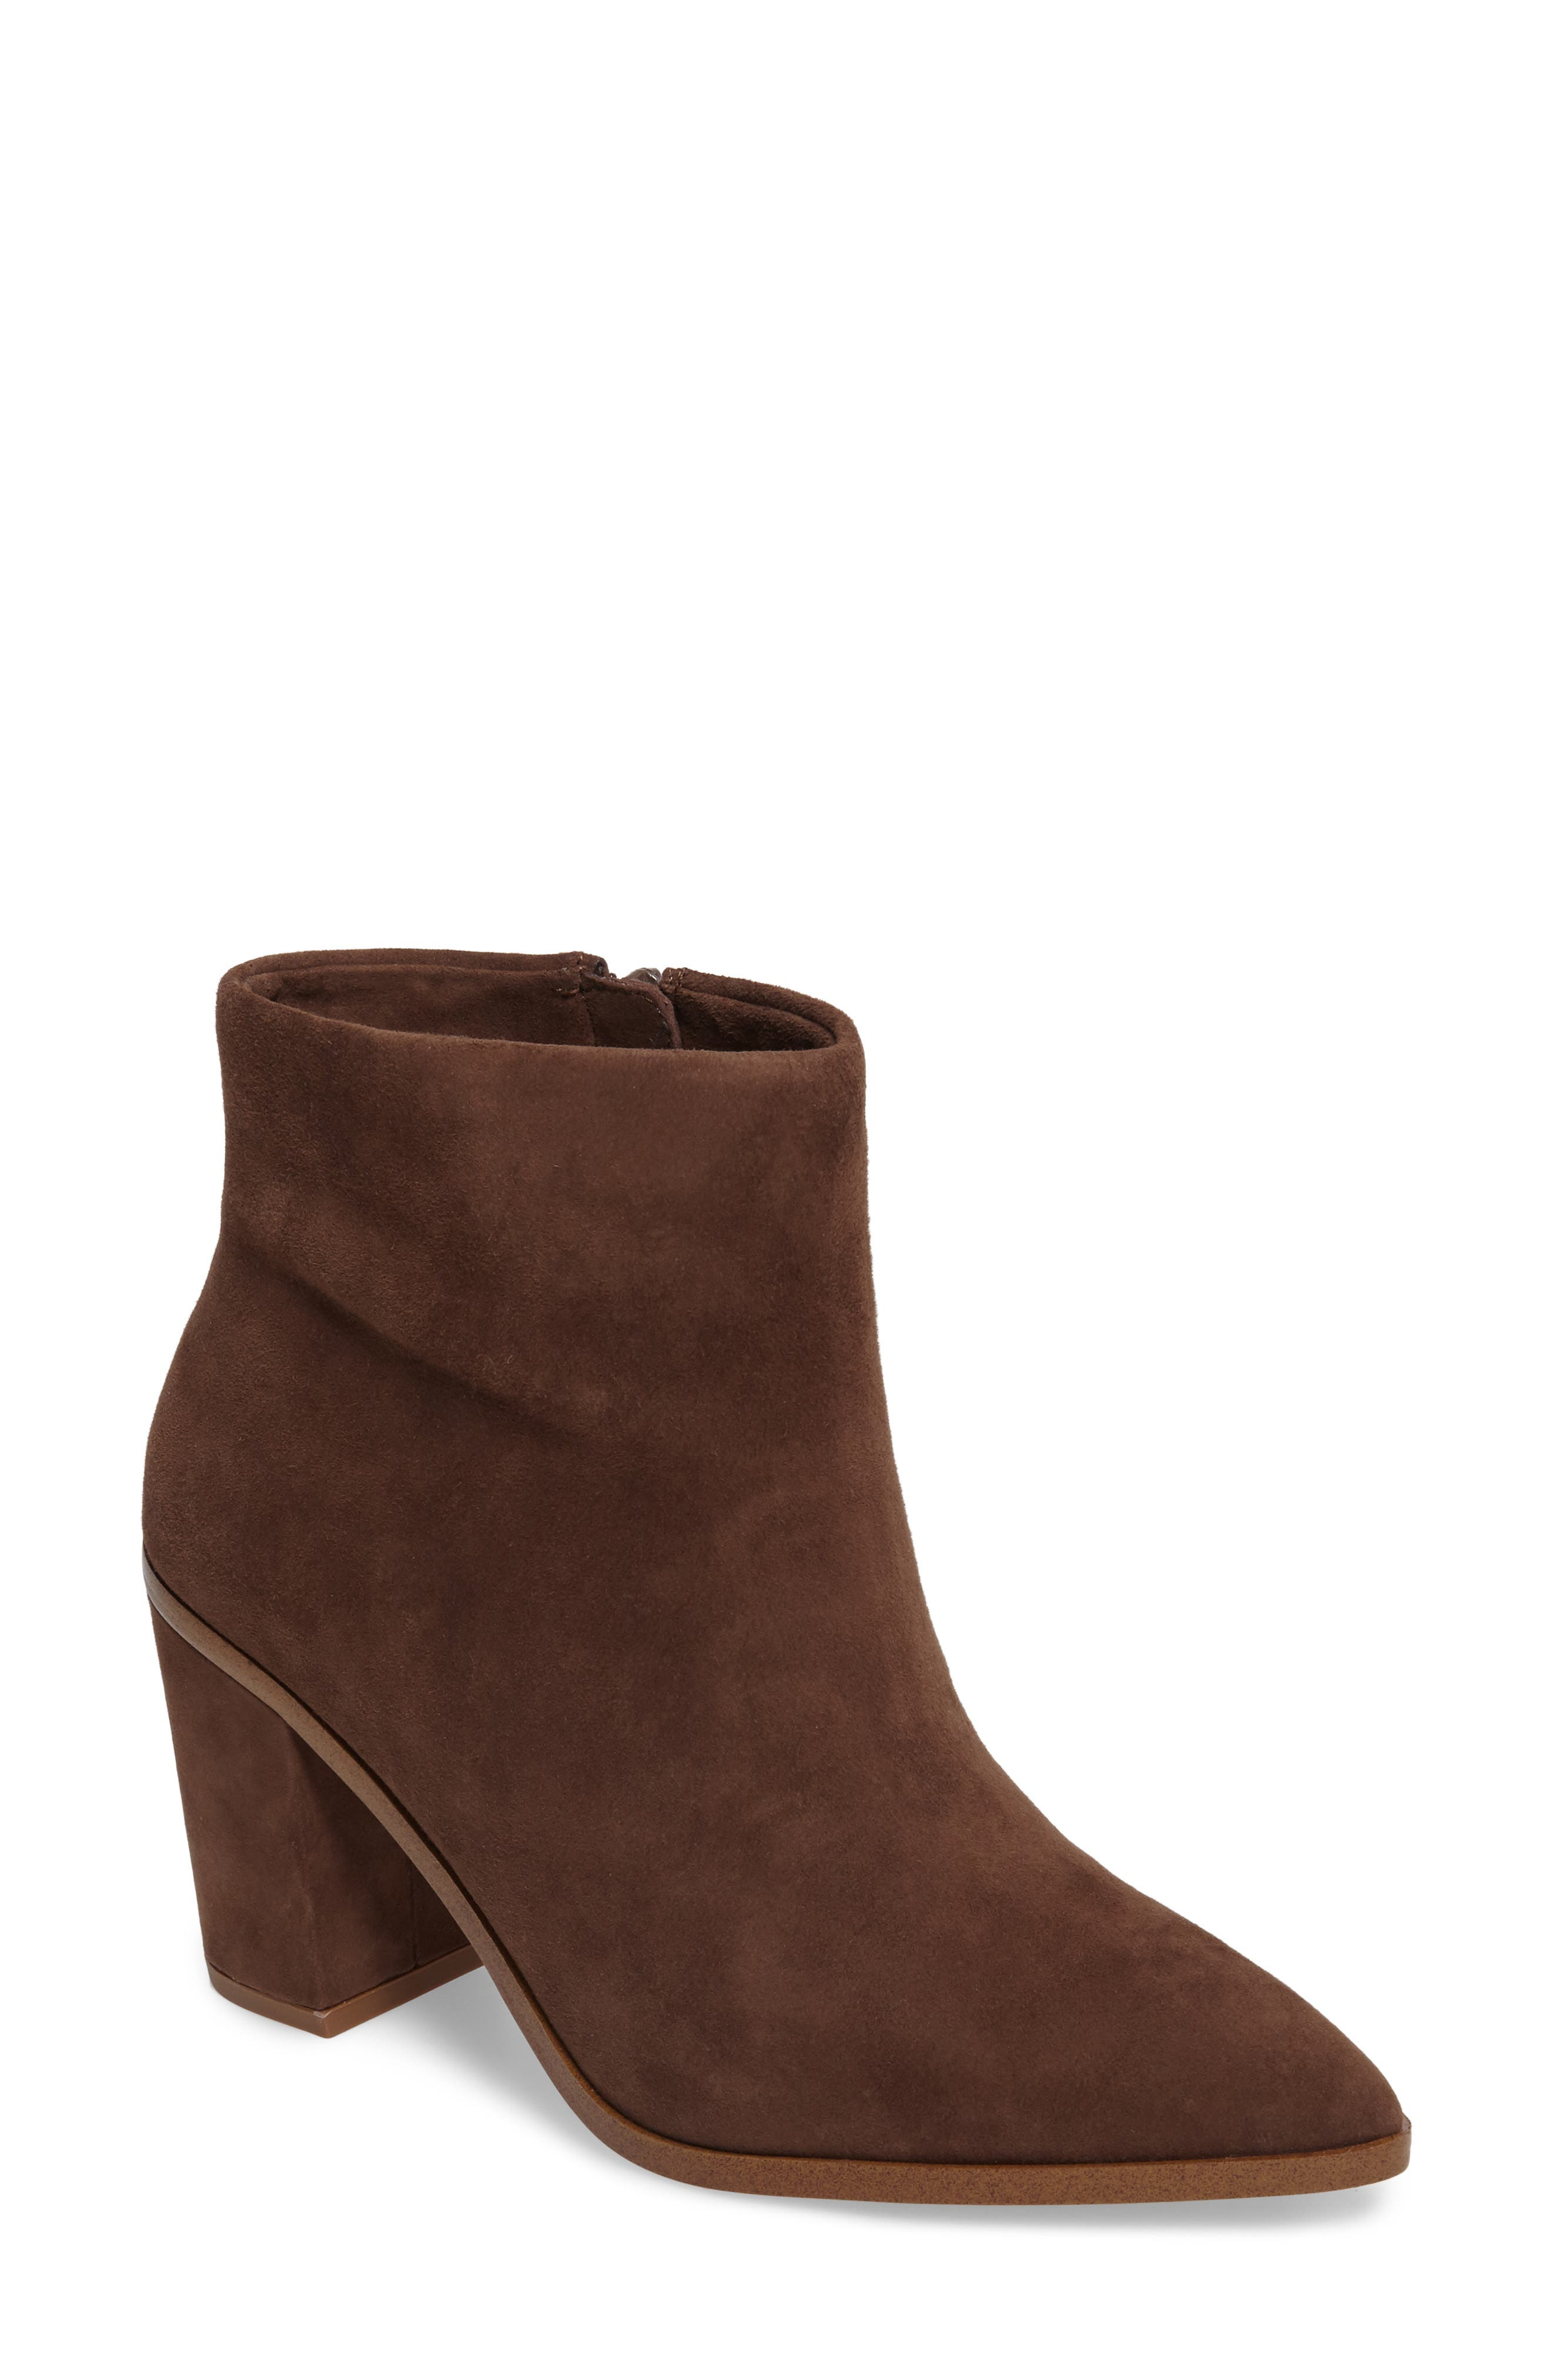 Alternate Image 1 Selected - 1.STATE Paven Pointy Toe Bootie (Women)